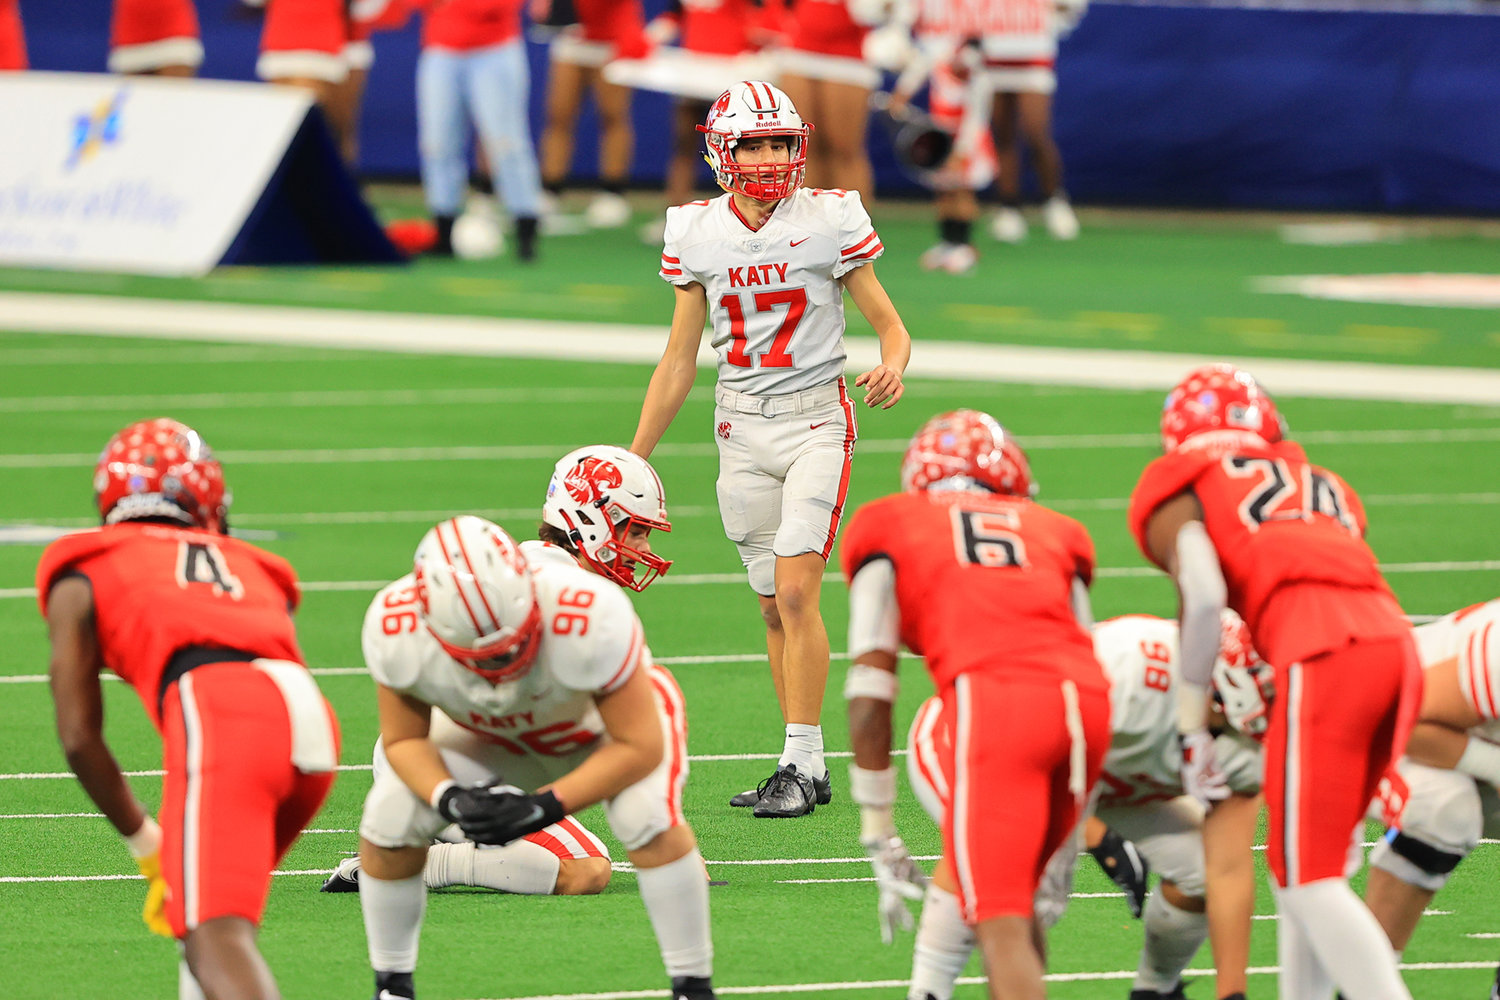 Katy High senior kicker Nemanja Lazic lines up to attempt a 48-yard field goal in the first half of the Tigers' 51-14 Class 6A-Division II state championship win over Cedar Hill on Saturday, Jan. 16, at AT&T Stadium in Arlington. Lazic made the field goal, tying a UIL state record for longest field goal made.